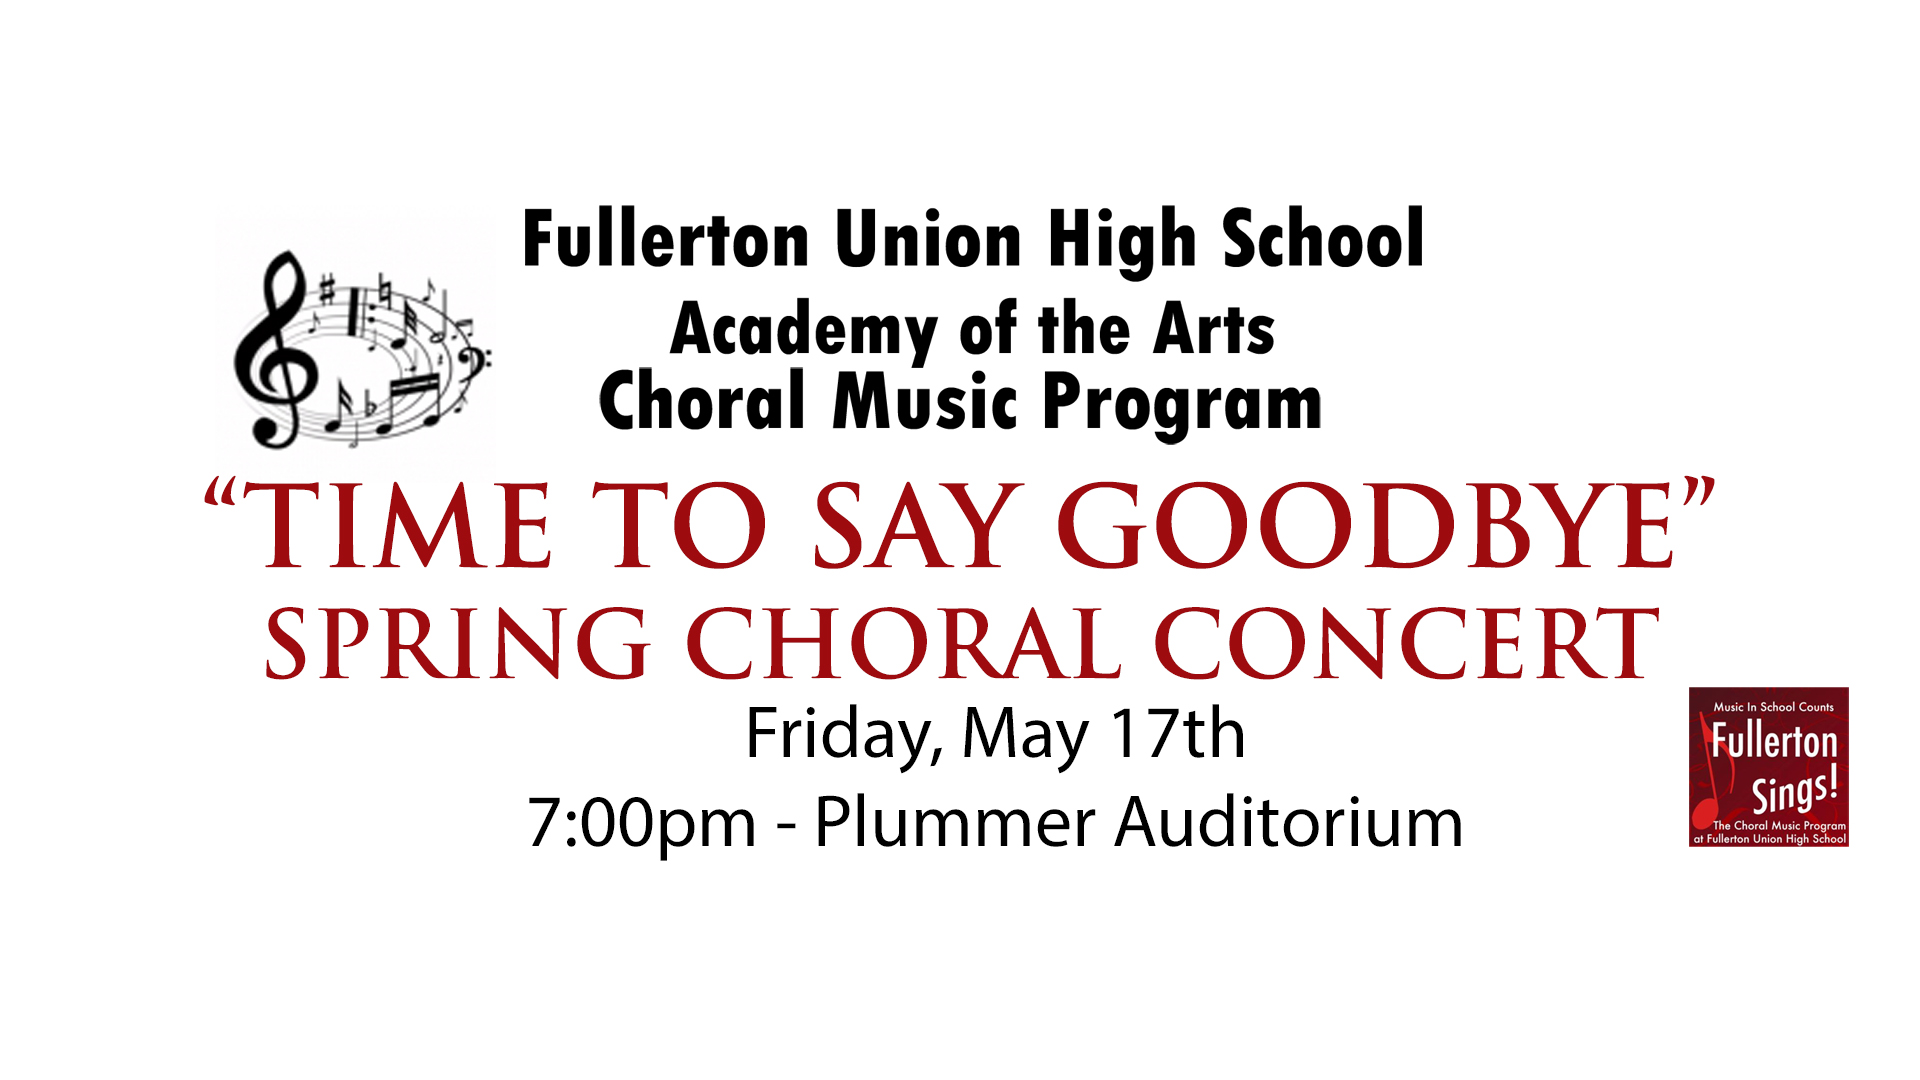 """Tickets are $10.00 per person. Student tickets will be available at the door for $5.00  Tickets available at  fuhs.booktix.com   SPECIAL: Buy a ticket to the Spring Choral Concert and Get a ticket for the Alumni Reunion Concert on May 18th for half off. Select """"Spring & Alumni Concert $15.00""""     Download the VIP Ticket Order Form"""